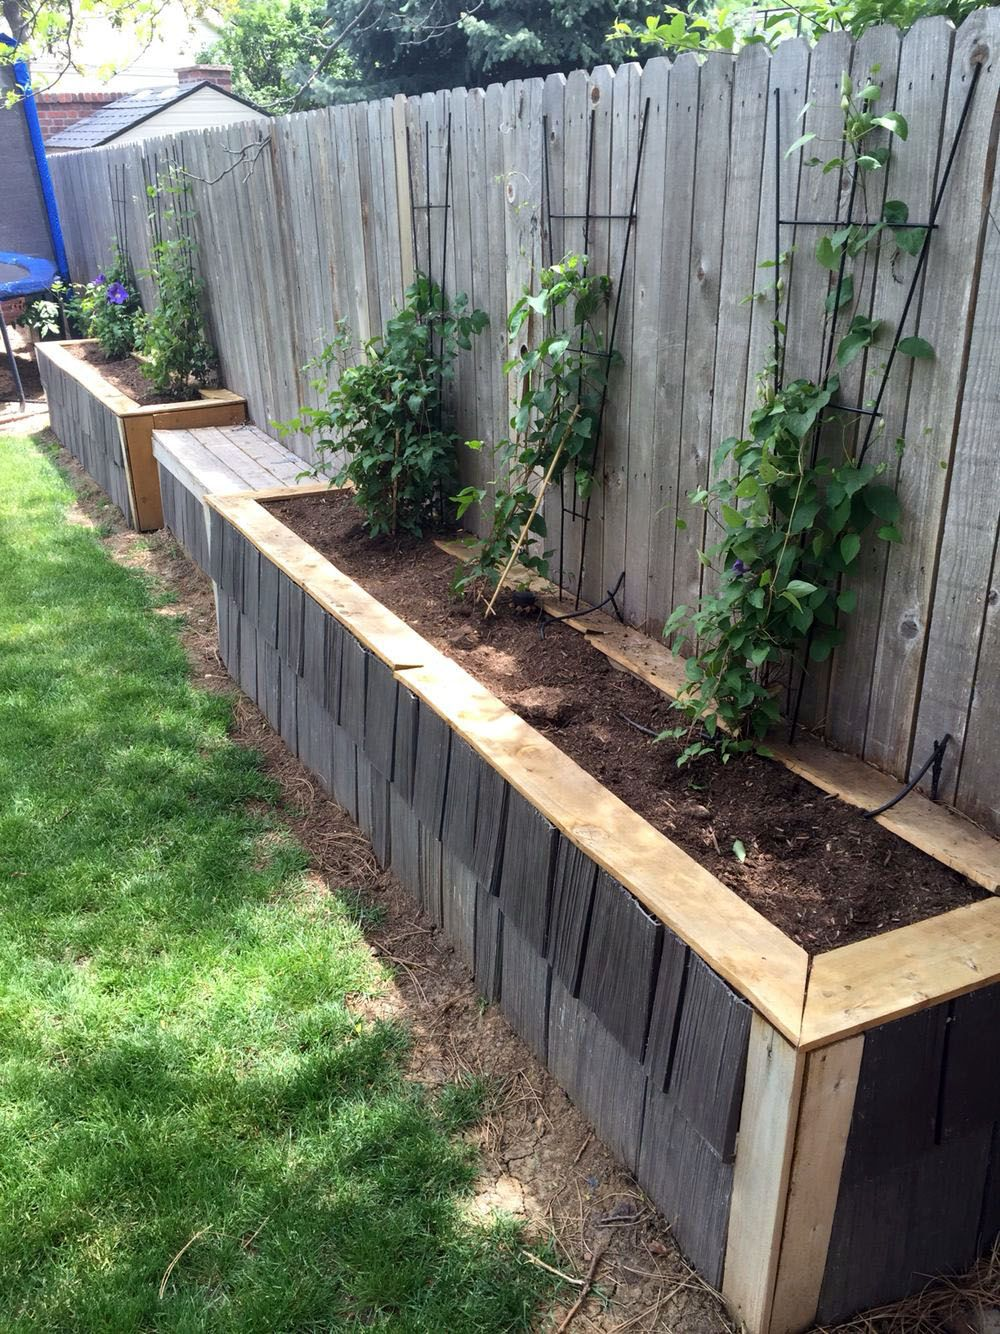 10 Lifted Garden Landscape Design Tips | Landscaping along ... on costco water, costco soup, costco cookies, costco christmas, costco strawberries, costco tree,